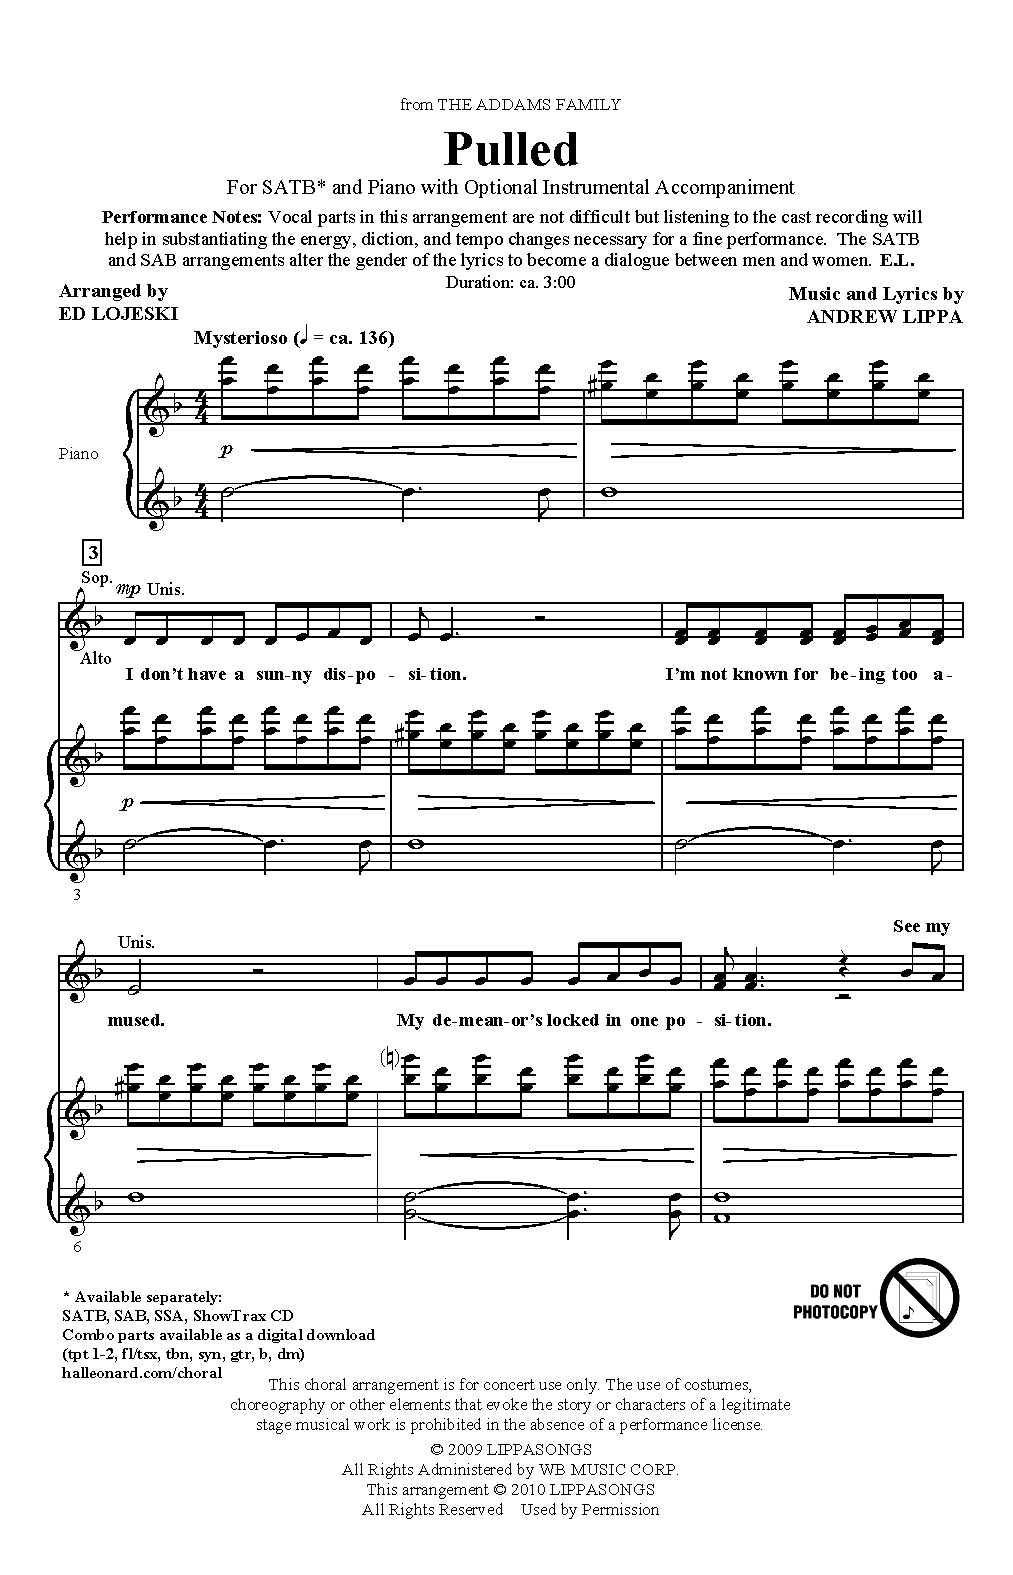 Pulled (from The Addams Family) (arr. Ed Lojeski) Sheet Music